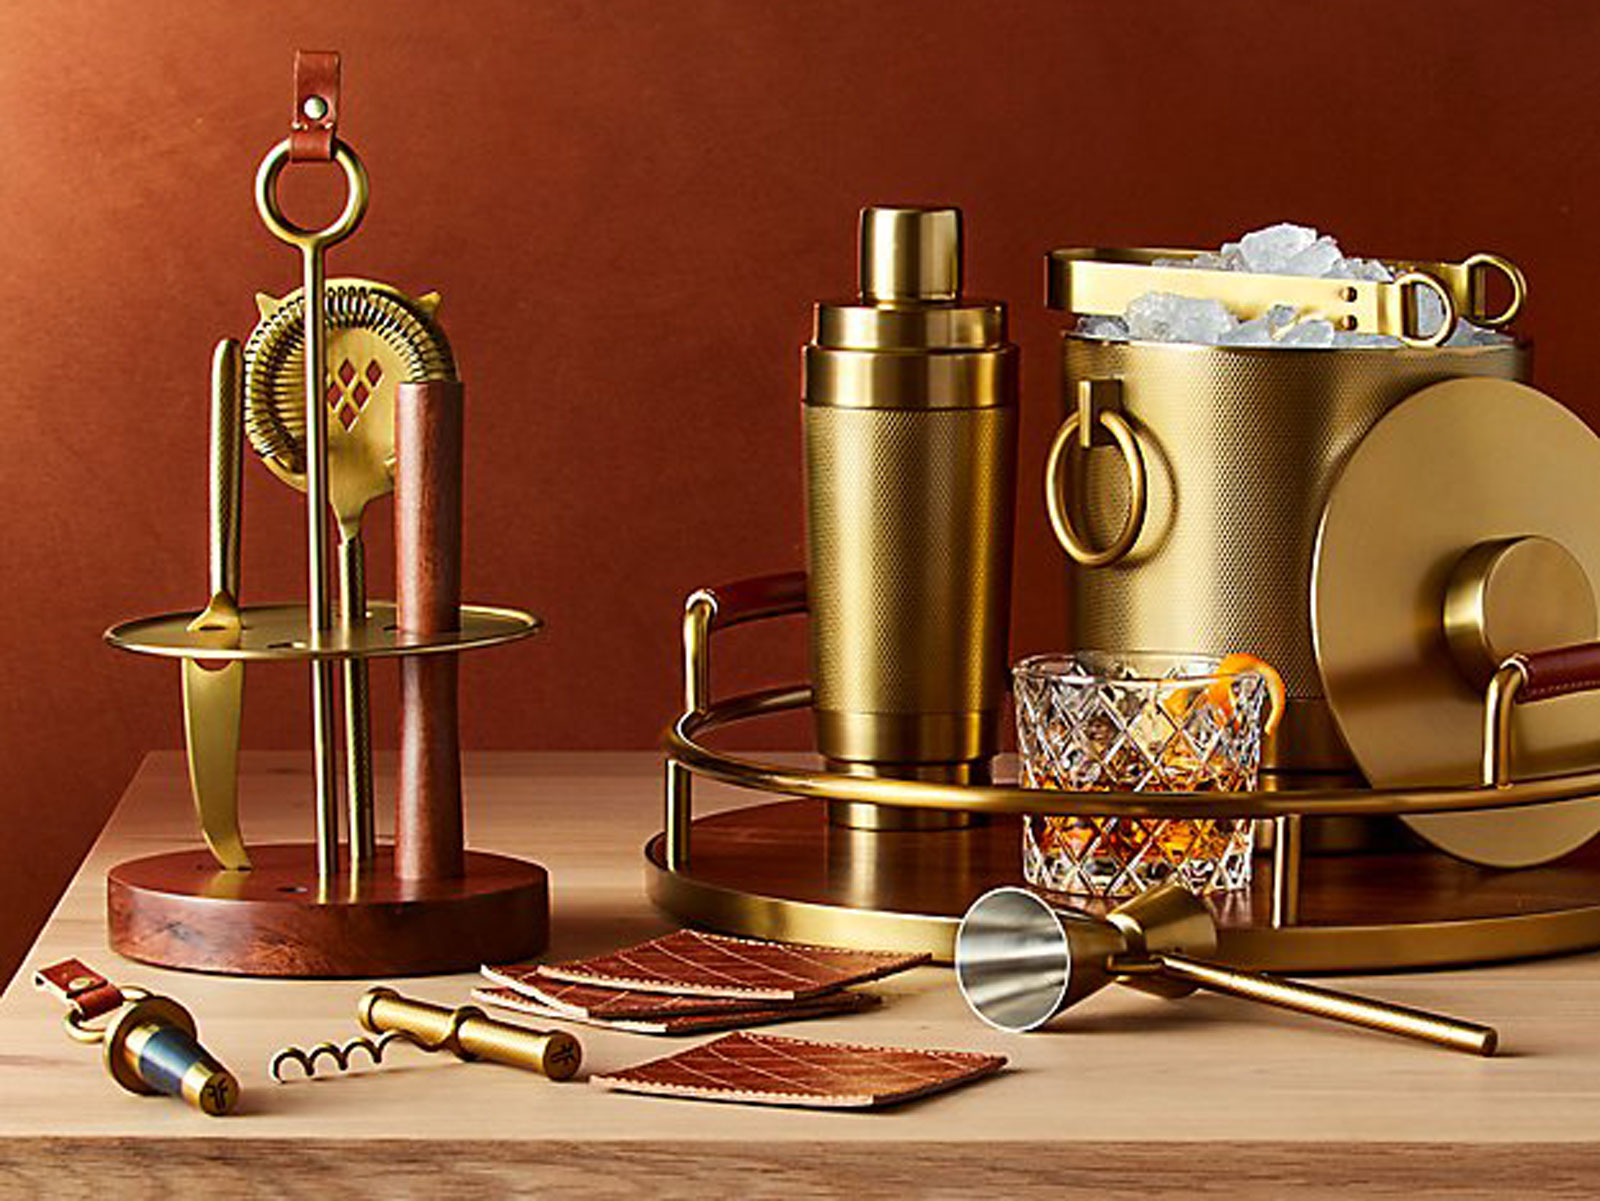 Frye Just Released a Barware Collection at Crate & Barrel and We'd Like One of Everything